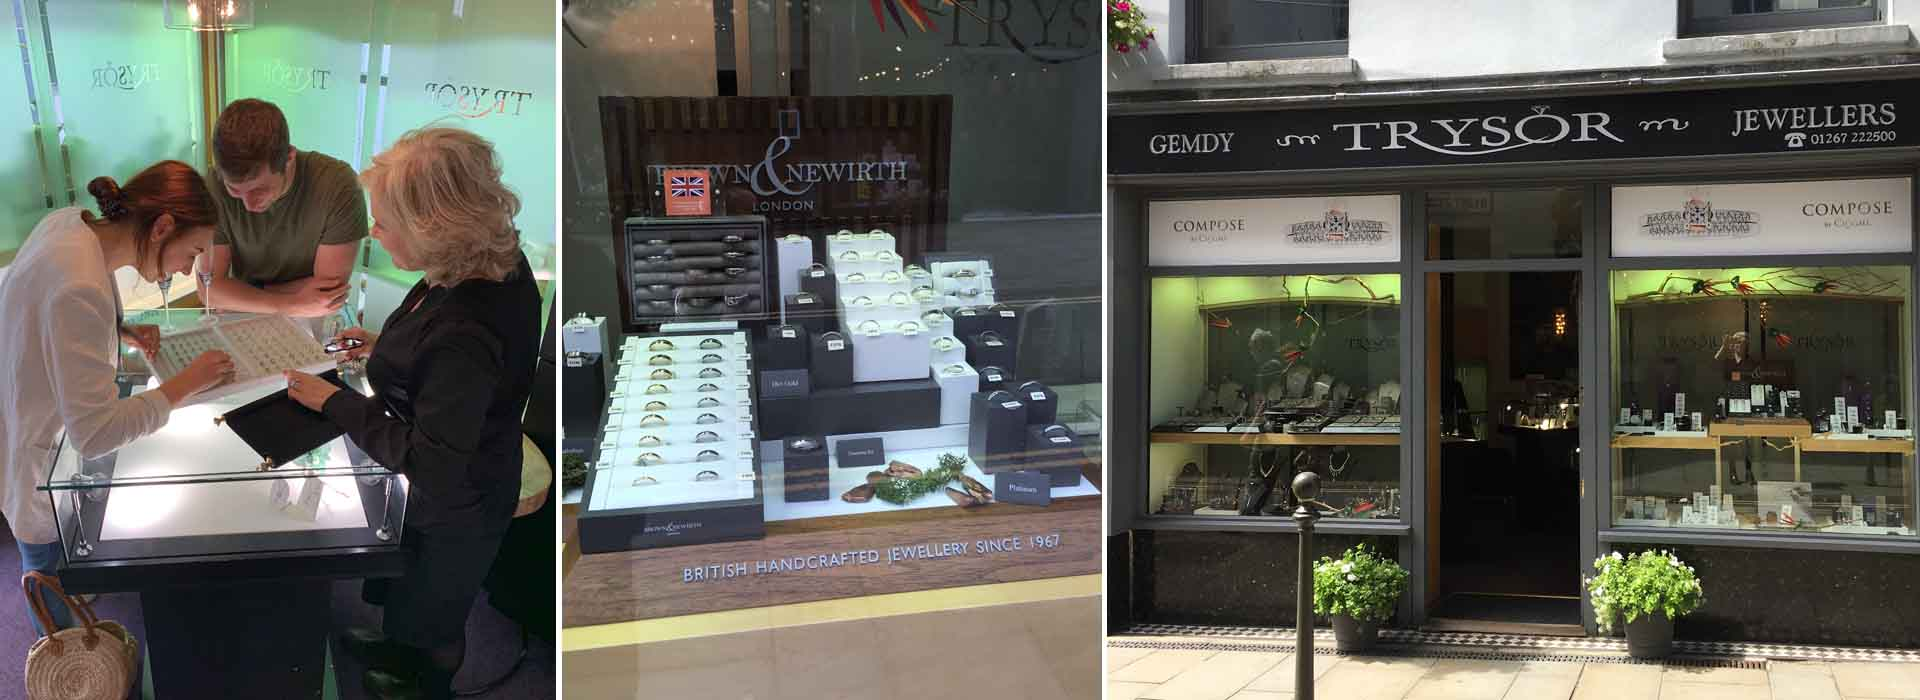 Welsh Jewellery & Welsh Engagement Rings by Trysor Jewellers